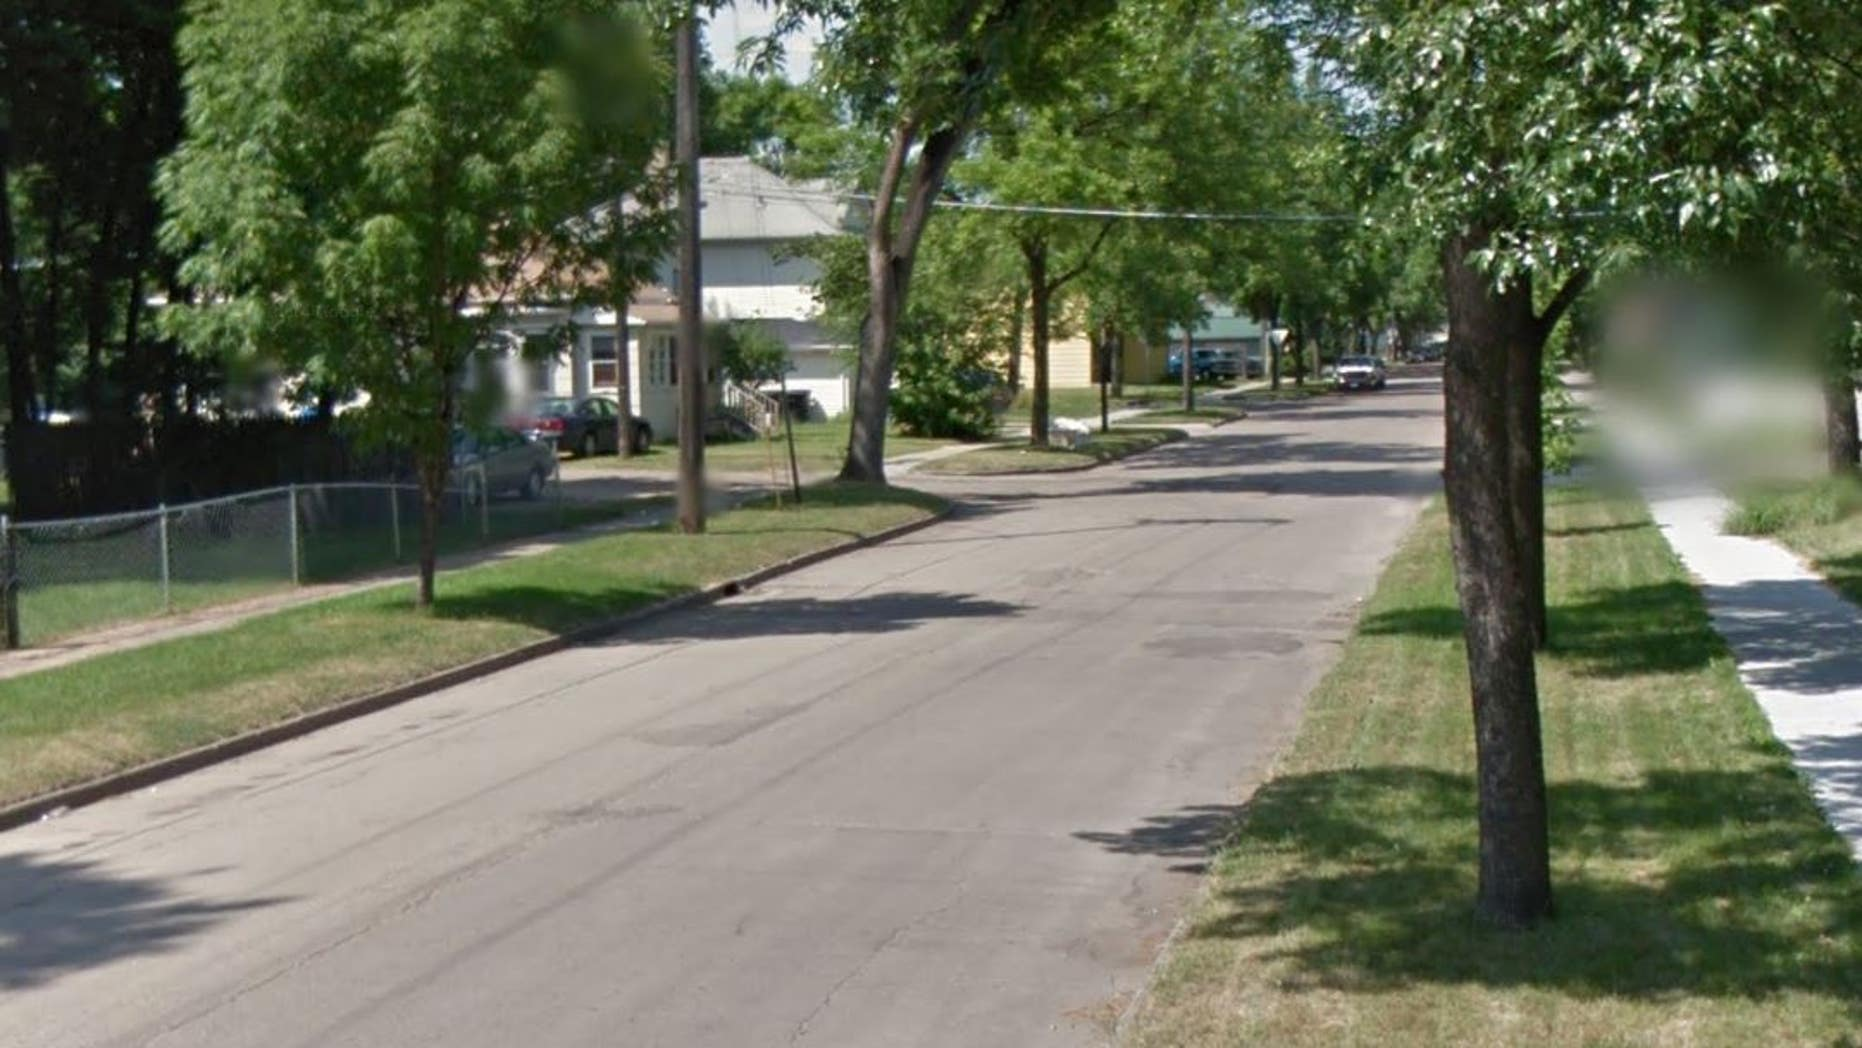 Four people were found dead in a home on this street in Grand Forks, N.D.